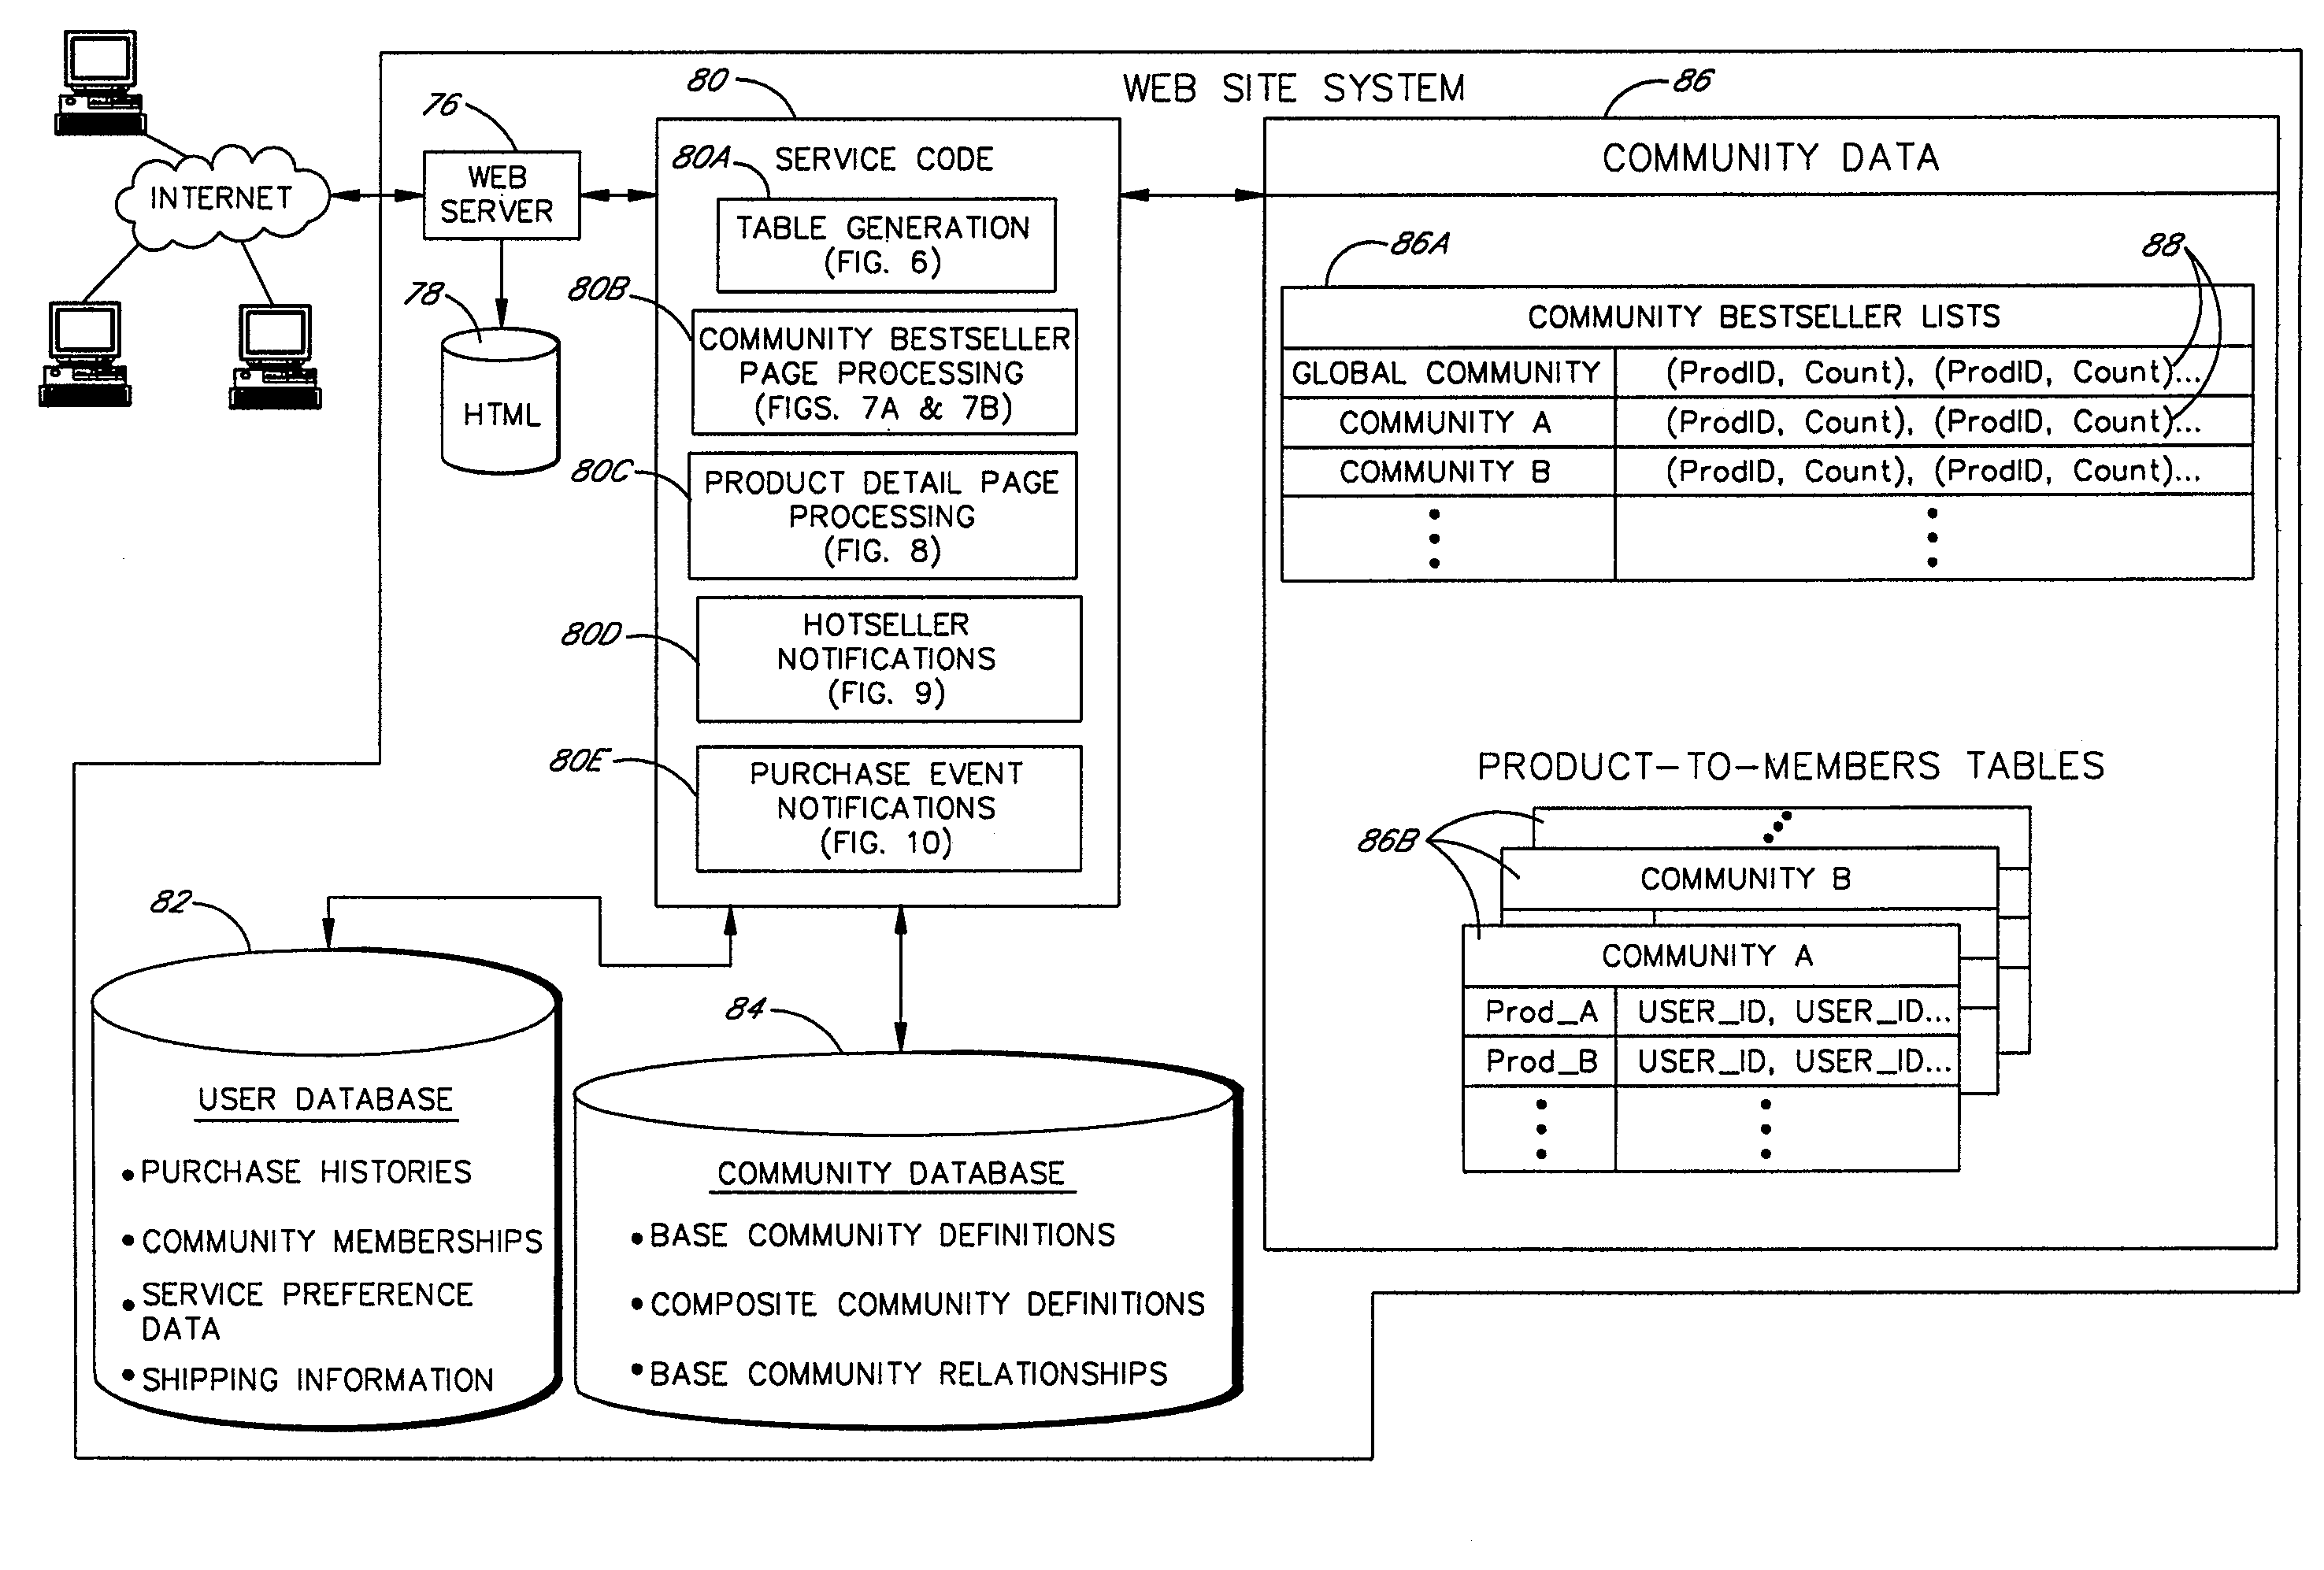 Amazon  patent by Jeff Bezos from 2007 for method, system and medium for assisting a user in evaluating a merchant in an electronic marketplace - US7308425